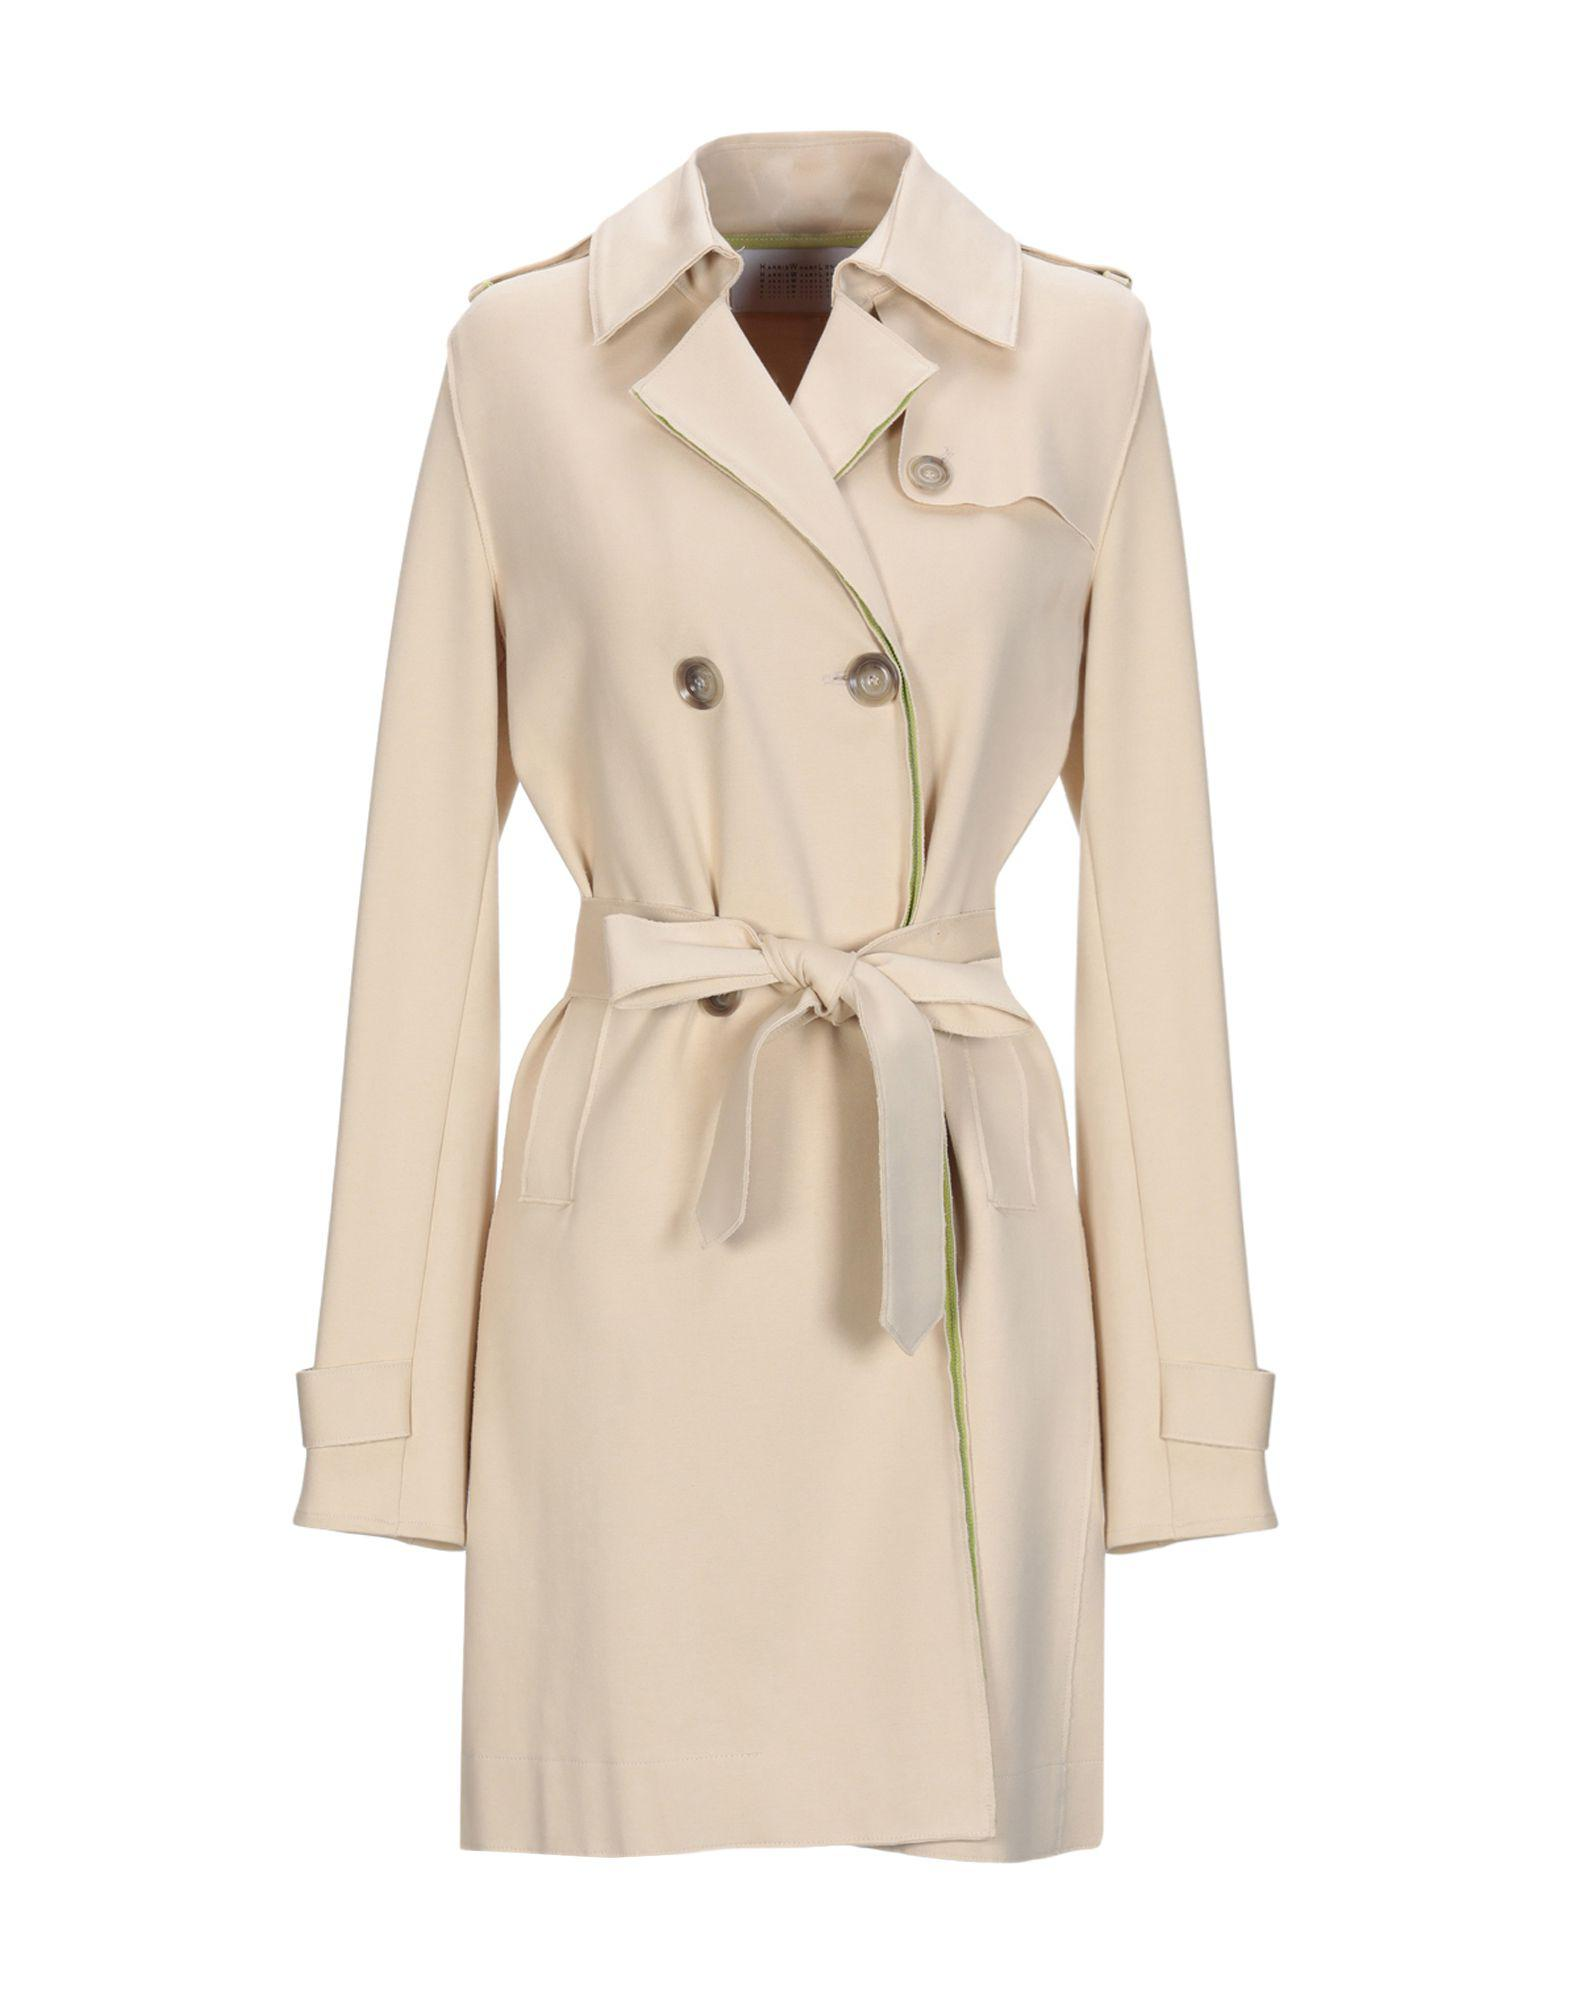 61699b2180bd4 Lyst - Harris Wharf London Overcoat in Natural